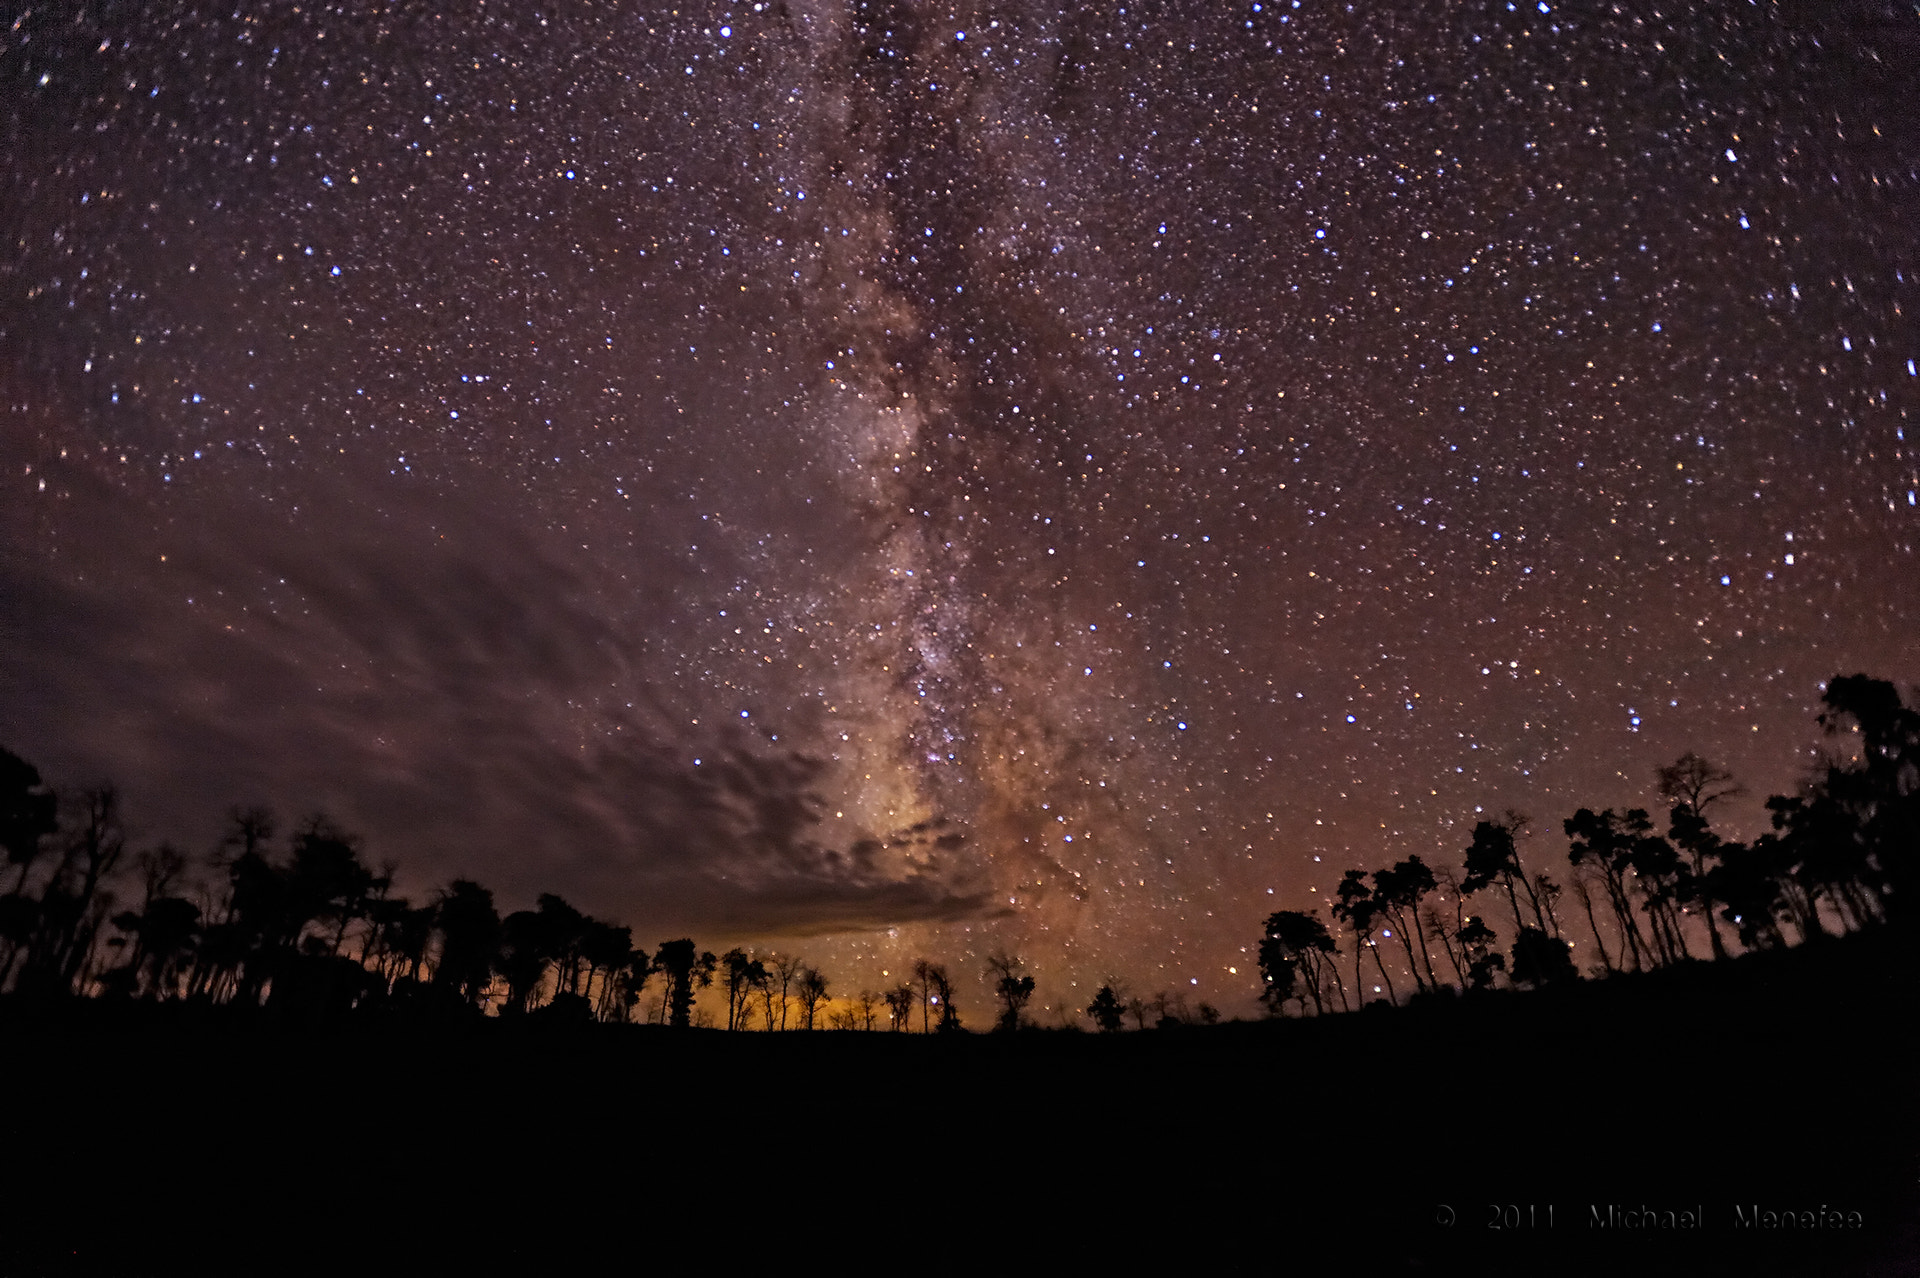 Photograph Seeing the Universe Above the Forest by Michael Menefee on 500px